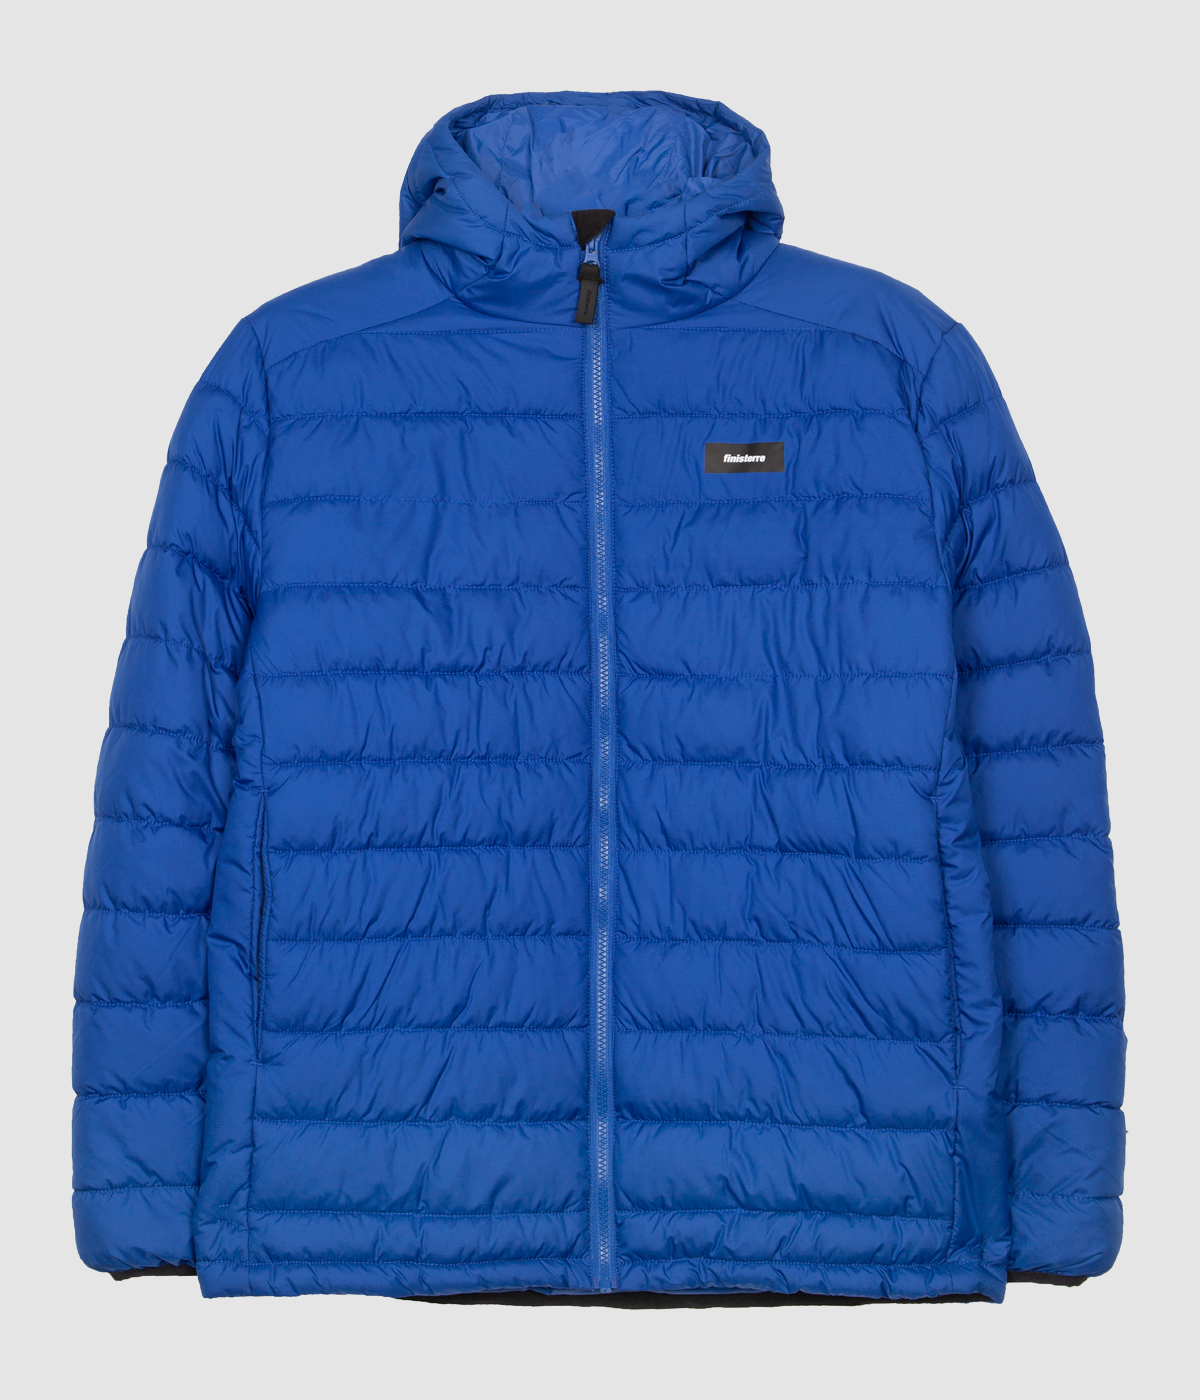 Finisterre Nebulas Jacket in blue: Christmas Gift Guide 2018